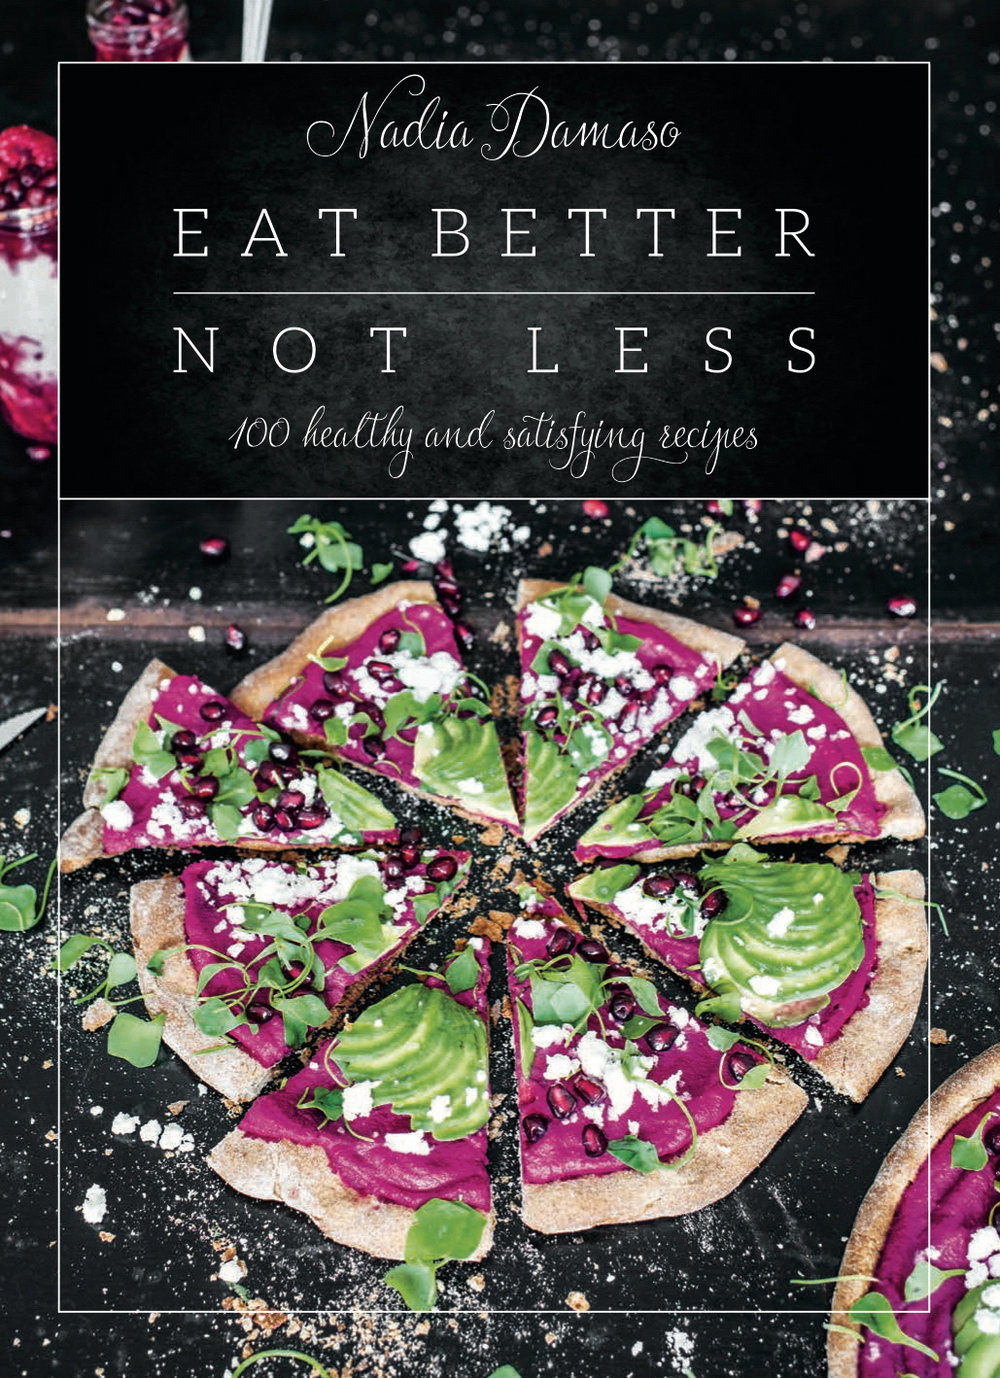 EAT BETTERNOT LESS - EASY, HEALTHY & SIMPLY DELICIOUS!With my recipes, I want to show you how many amazing opportunities there are to easily and quickly create healthy, filling and delicious meals! The secret to a healthy diet is to eat better, but certainly not less! With the right ingredients, this style of cooking is not only good for you and extremely fun, it also leads to a world full of new taste experiences.From no-sugar-added banana ice cream for breakfast to an avocado pizza for lunch or unbelievably sweet, completely innocent desserts, everything is in here for you to choose from. The over 100 recipes in this book will not only attract your sense of taste, they're also a feast for the eyes! Everybody can cook; it's just something you have to practice and, most importantly, do with a lot of passion, imagination and creativity! WhAT'S IN THE COOKBOOK?Over 100 recipes & pictures on 260 pages developed & captured by Nadia DamasoAll recipes are free from refined sugar & refined white flour,  many vegan recipes, always dairy& gluten-free optionsTips & tricks to a healthy lifestyle and diet in generalWhat's in my  cupboard plus an overview of  my favorite products I use for my recipes …and much, much more!:)